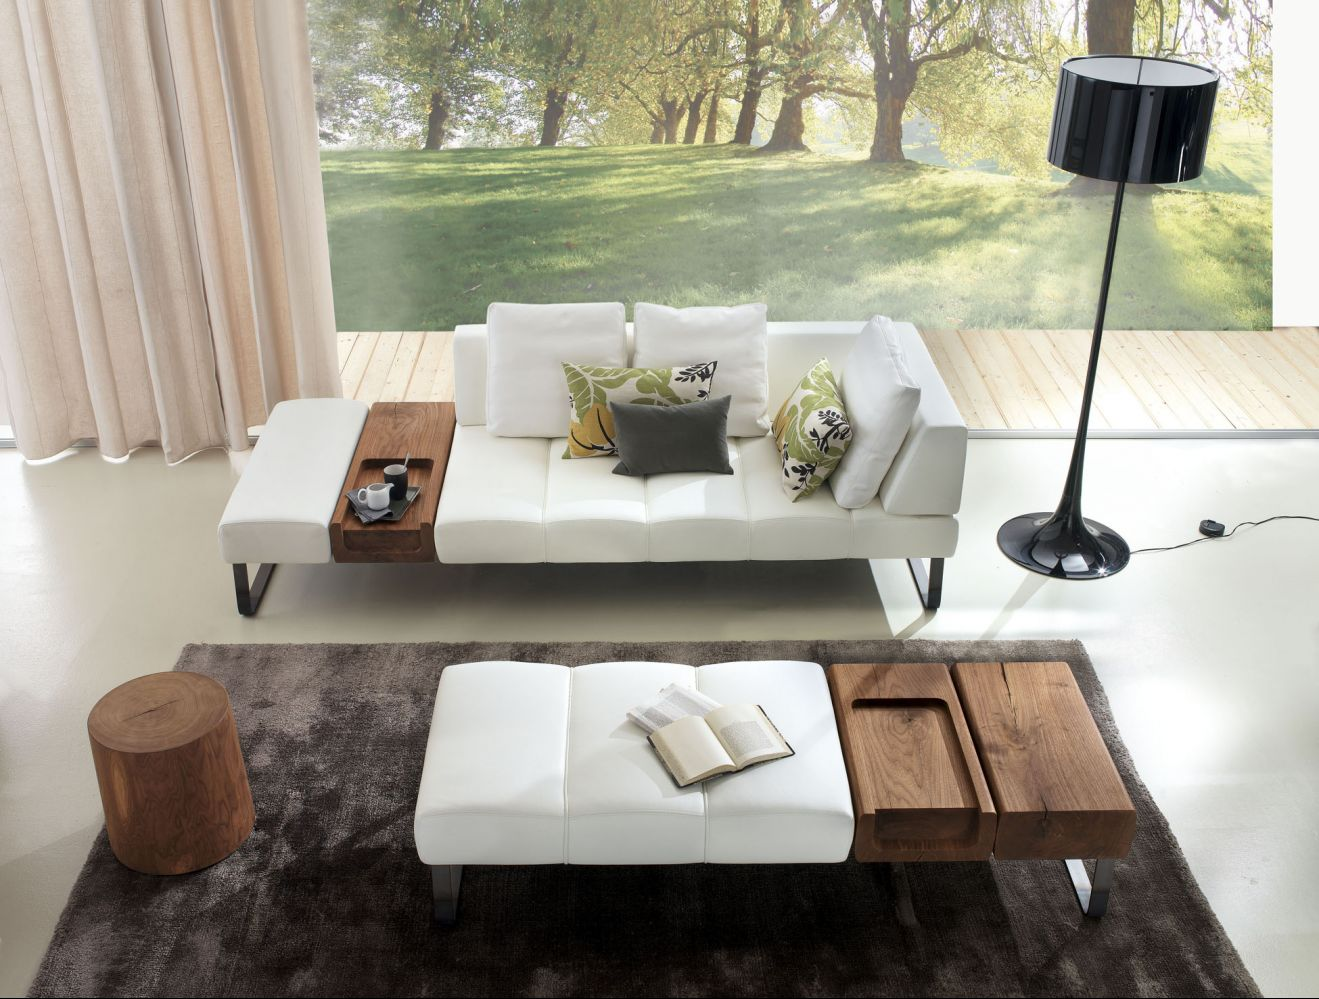 Designer sofas series from riva 1920 interior design for Design salotti